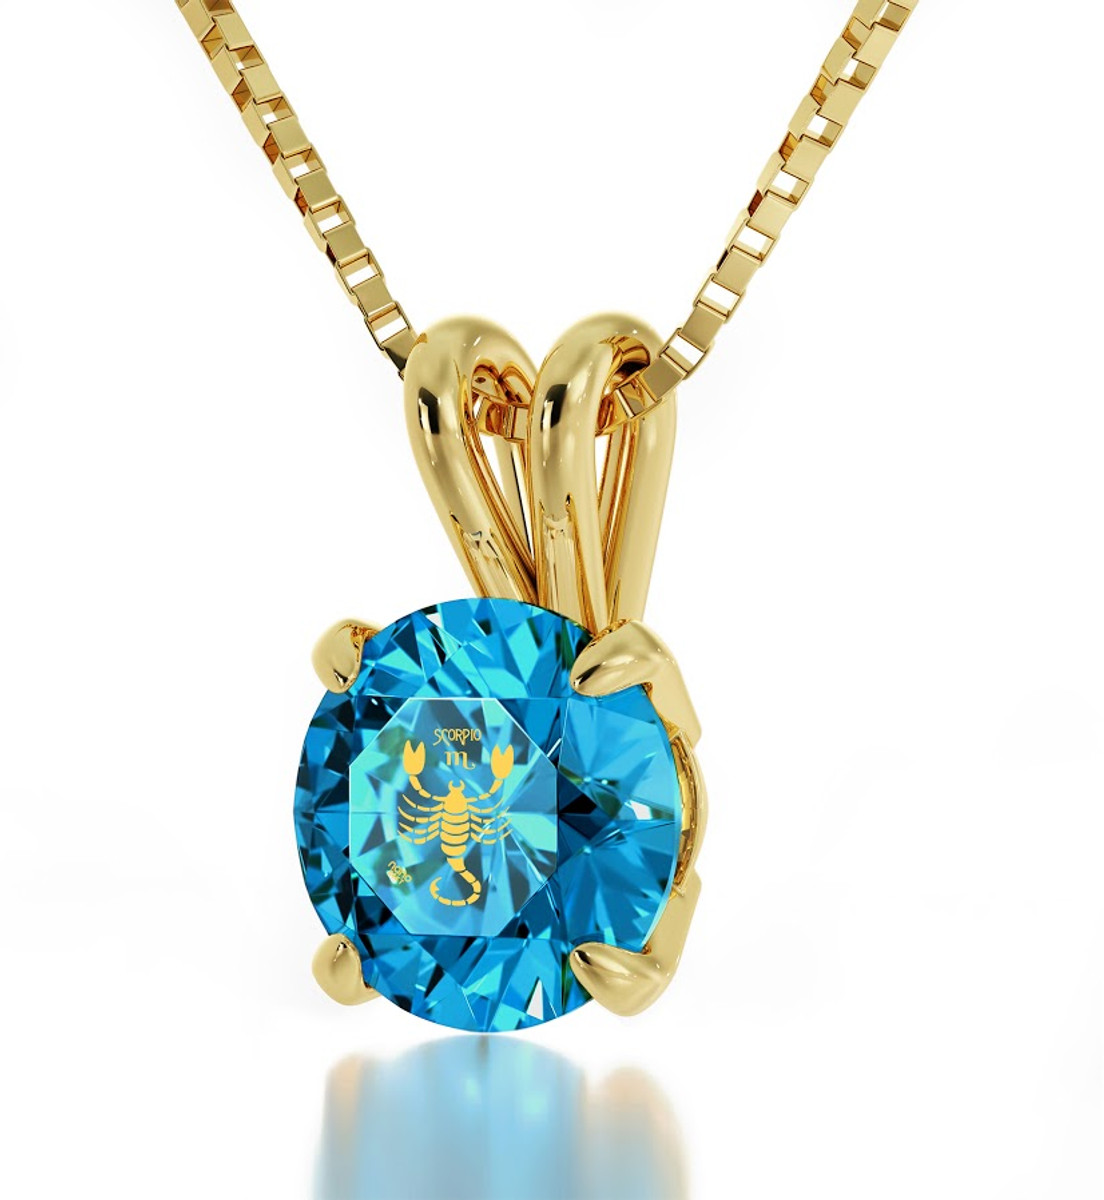 Teal Inspirational Jewelry Gold Scorpio Necklace